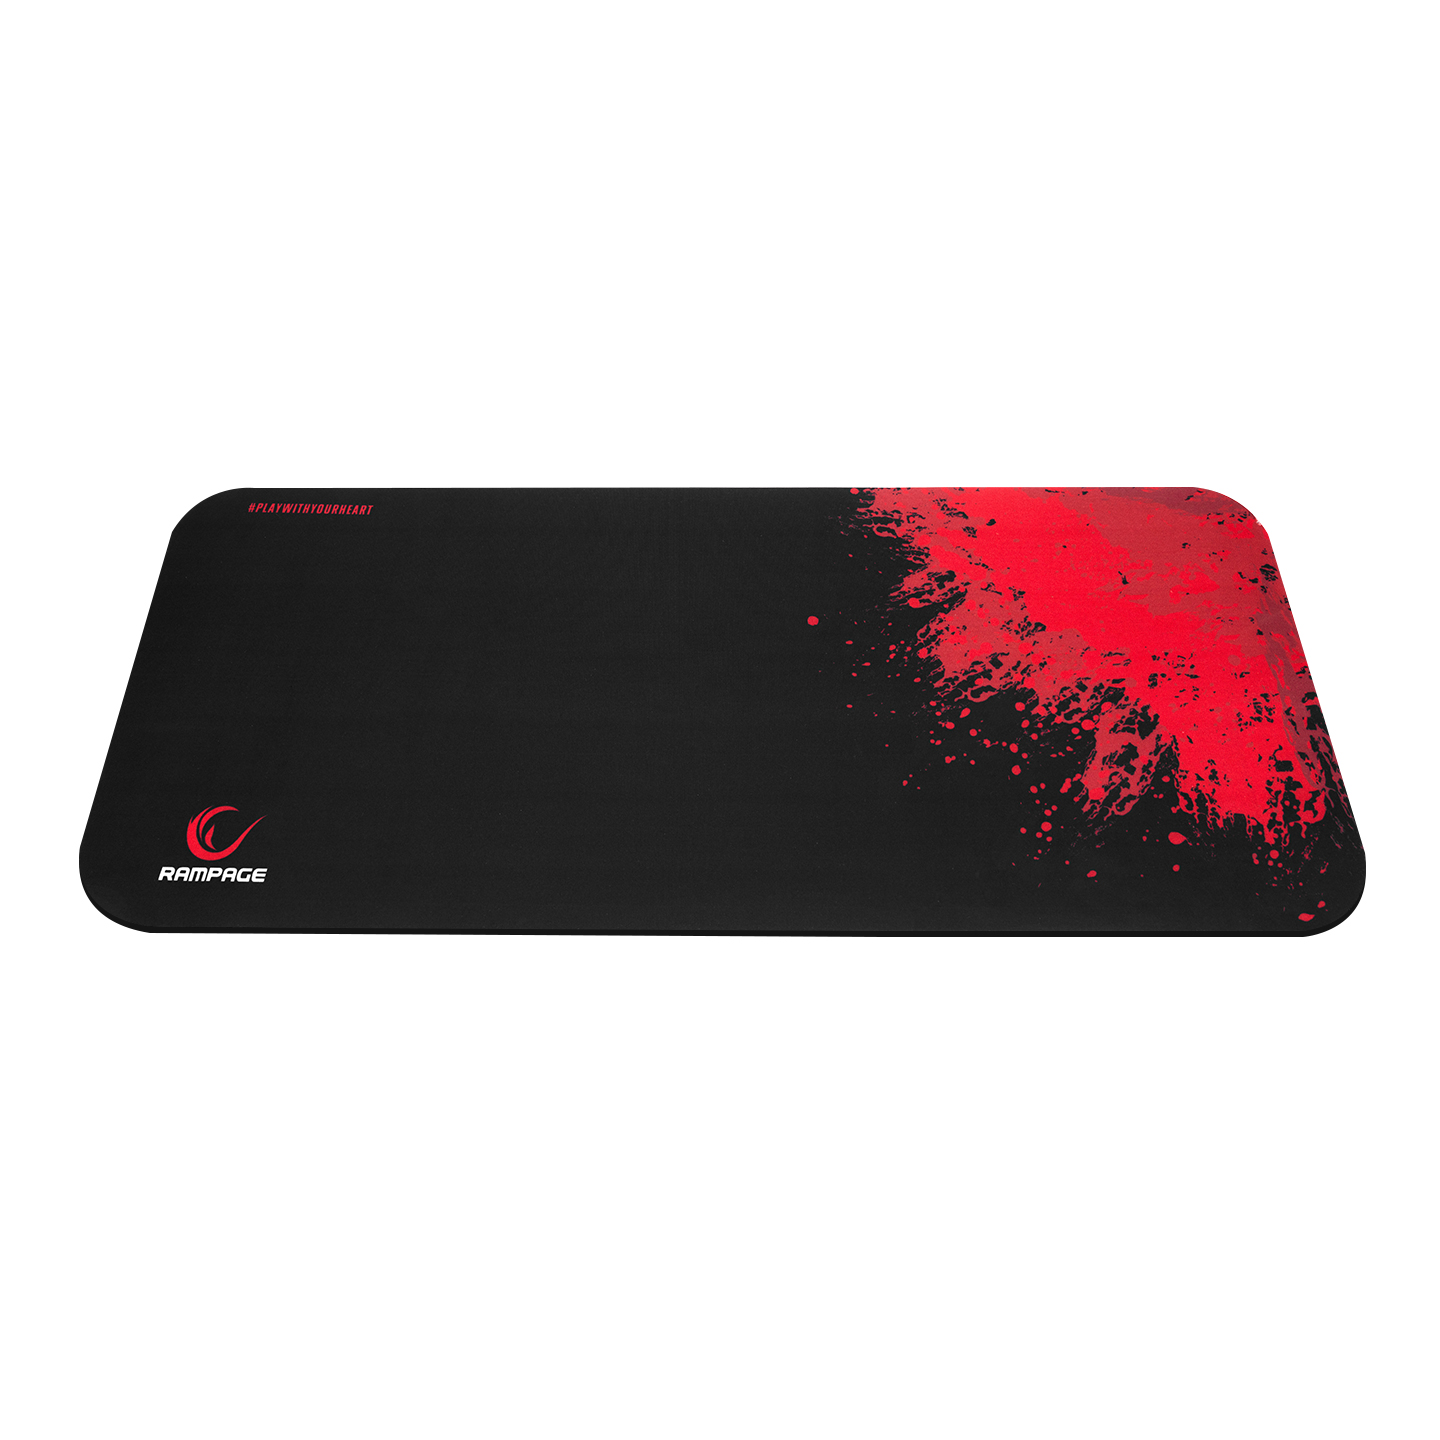 Rampage MP-20 X-JAMMER 300x700x3mm Gaming Mouse Pad